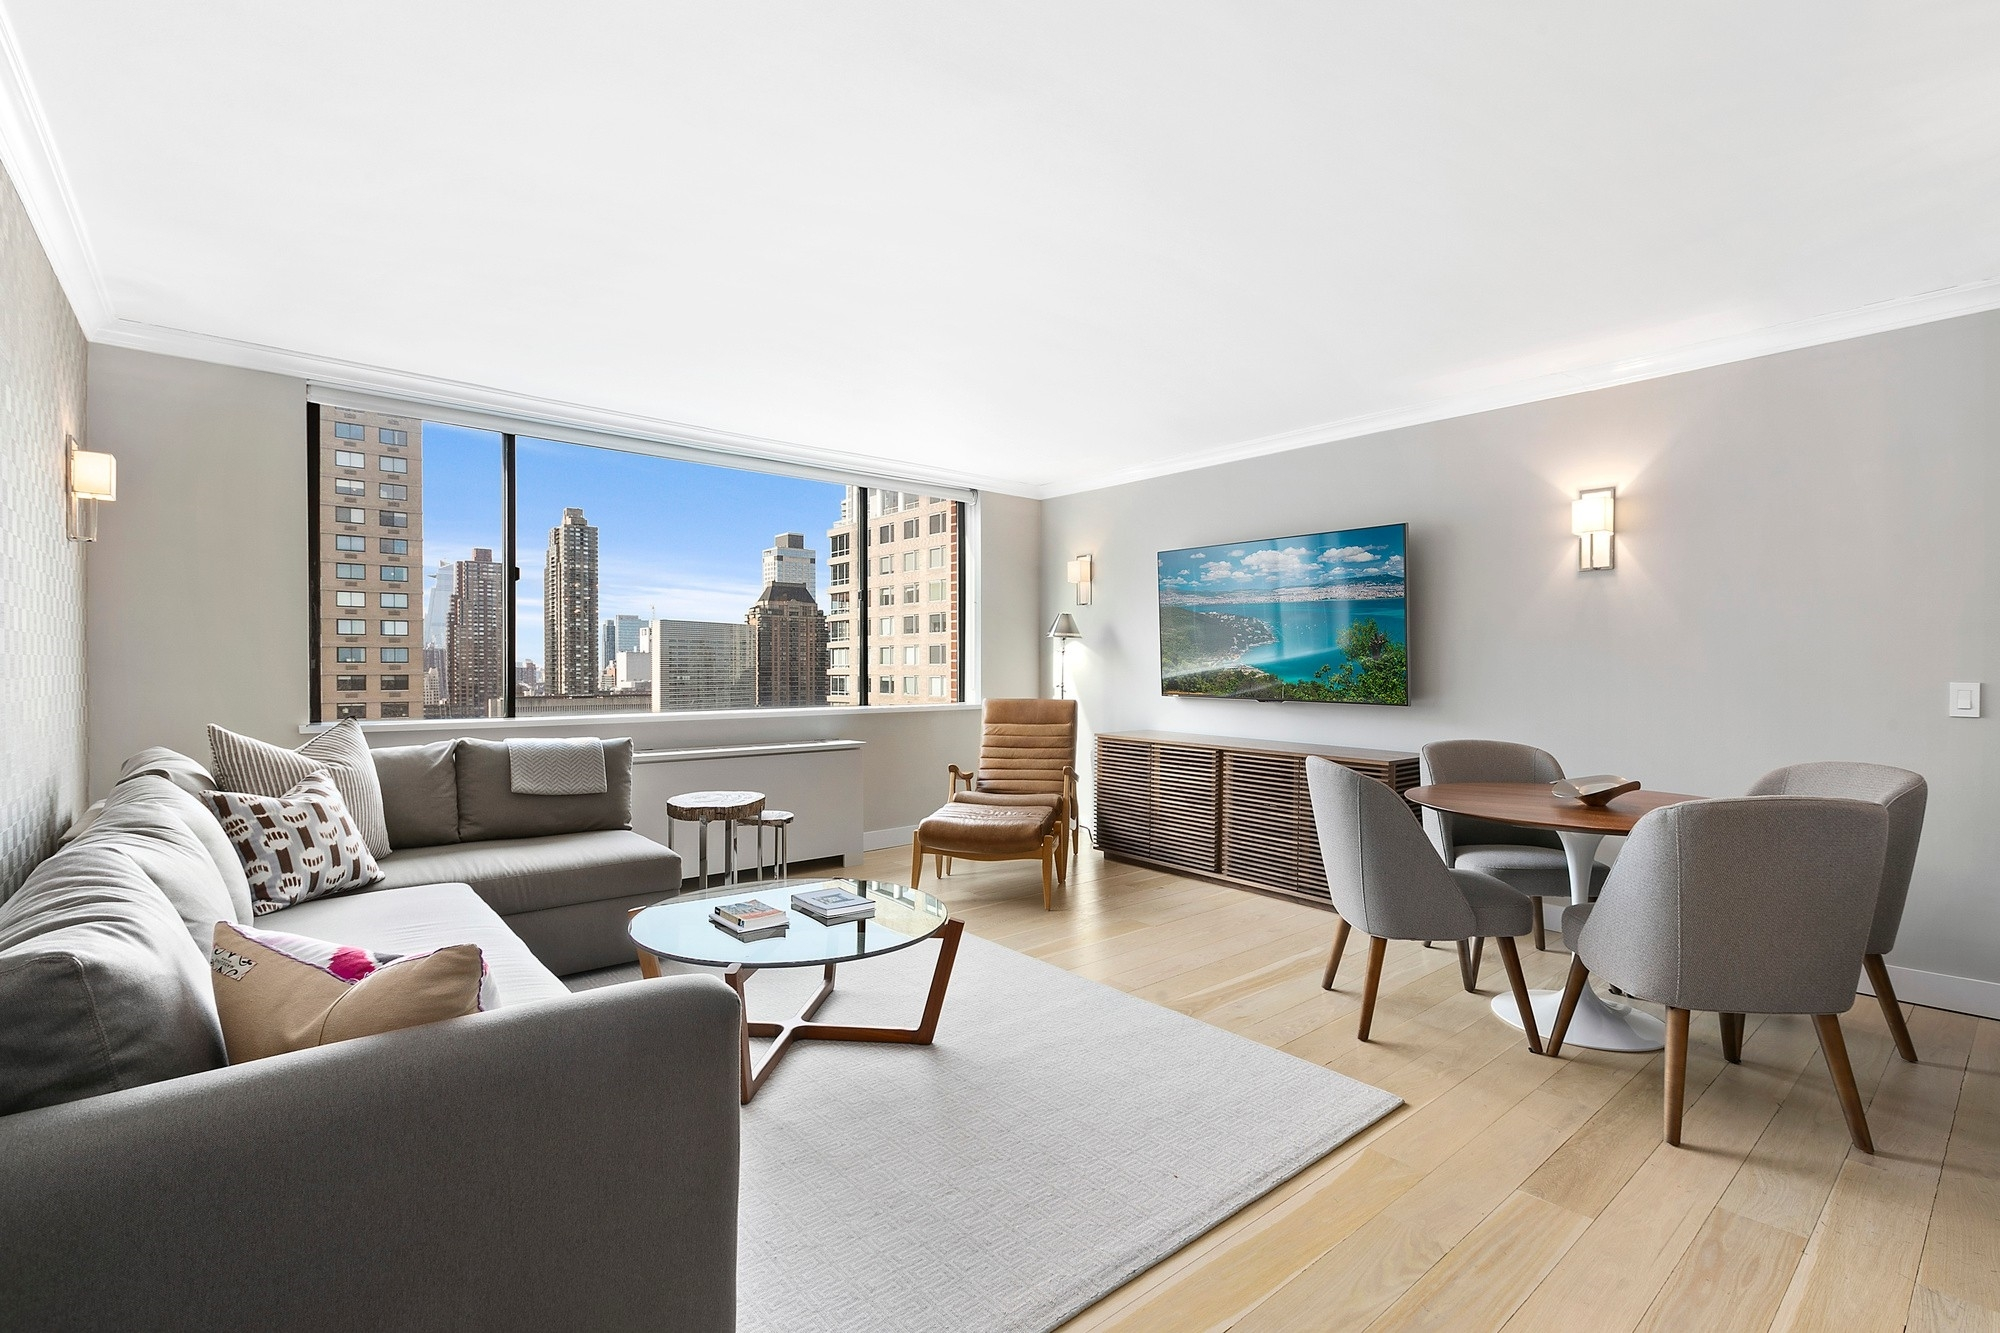 Property at Lincoln Square, New York, NY 10023